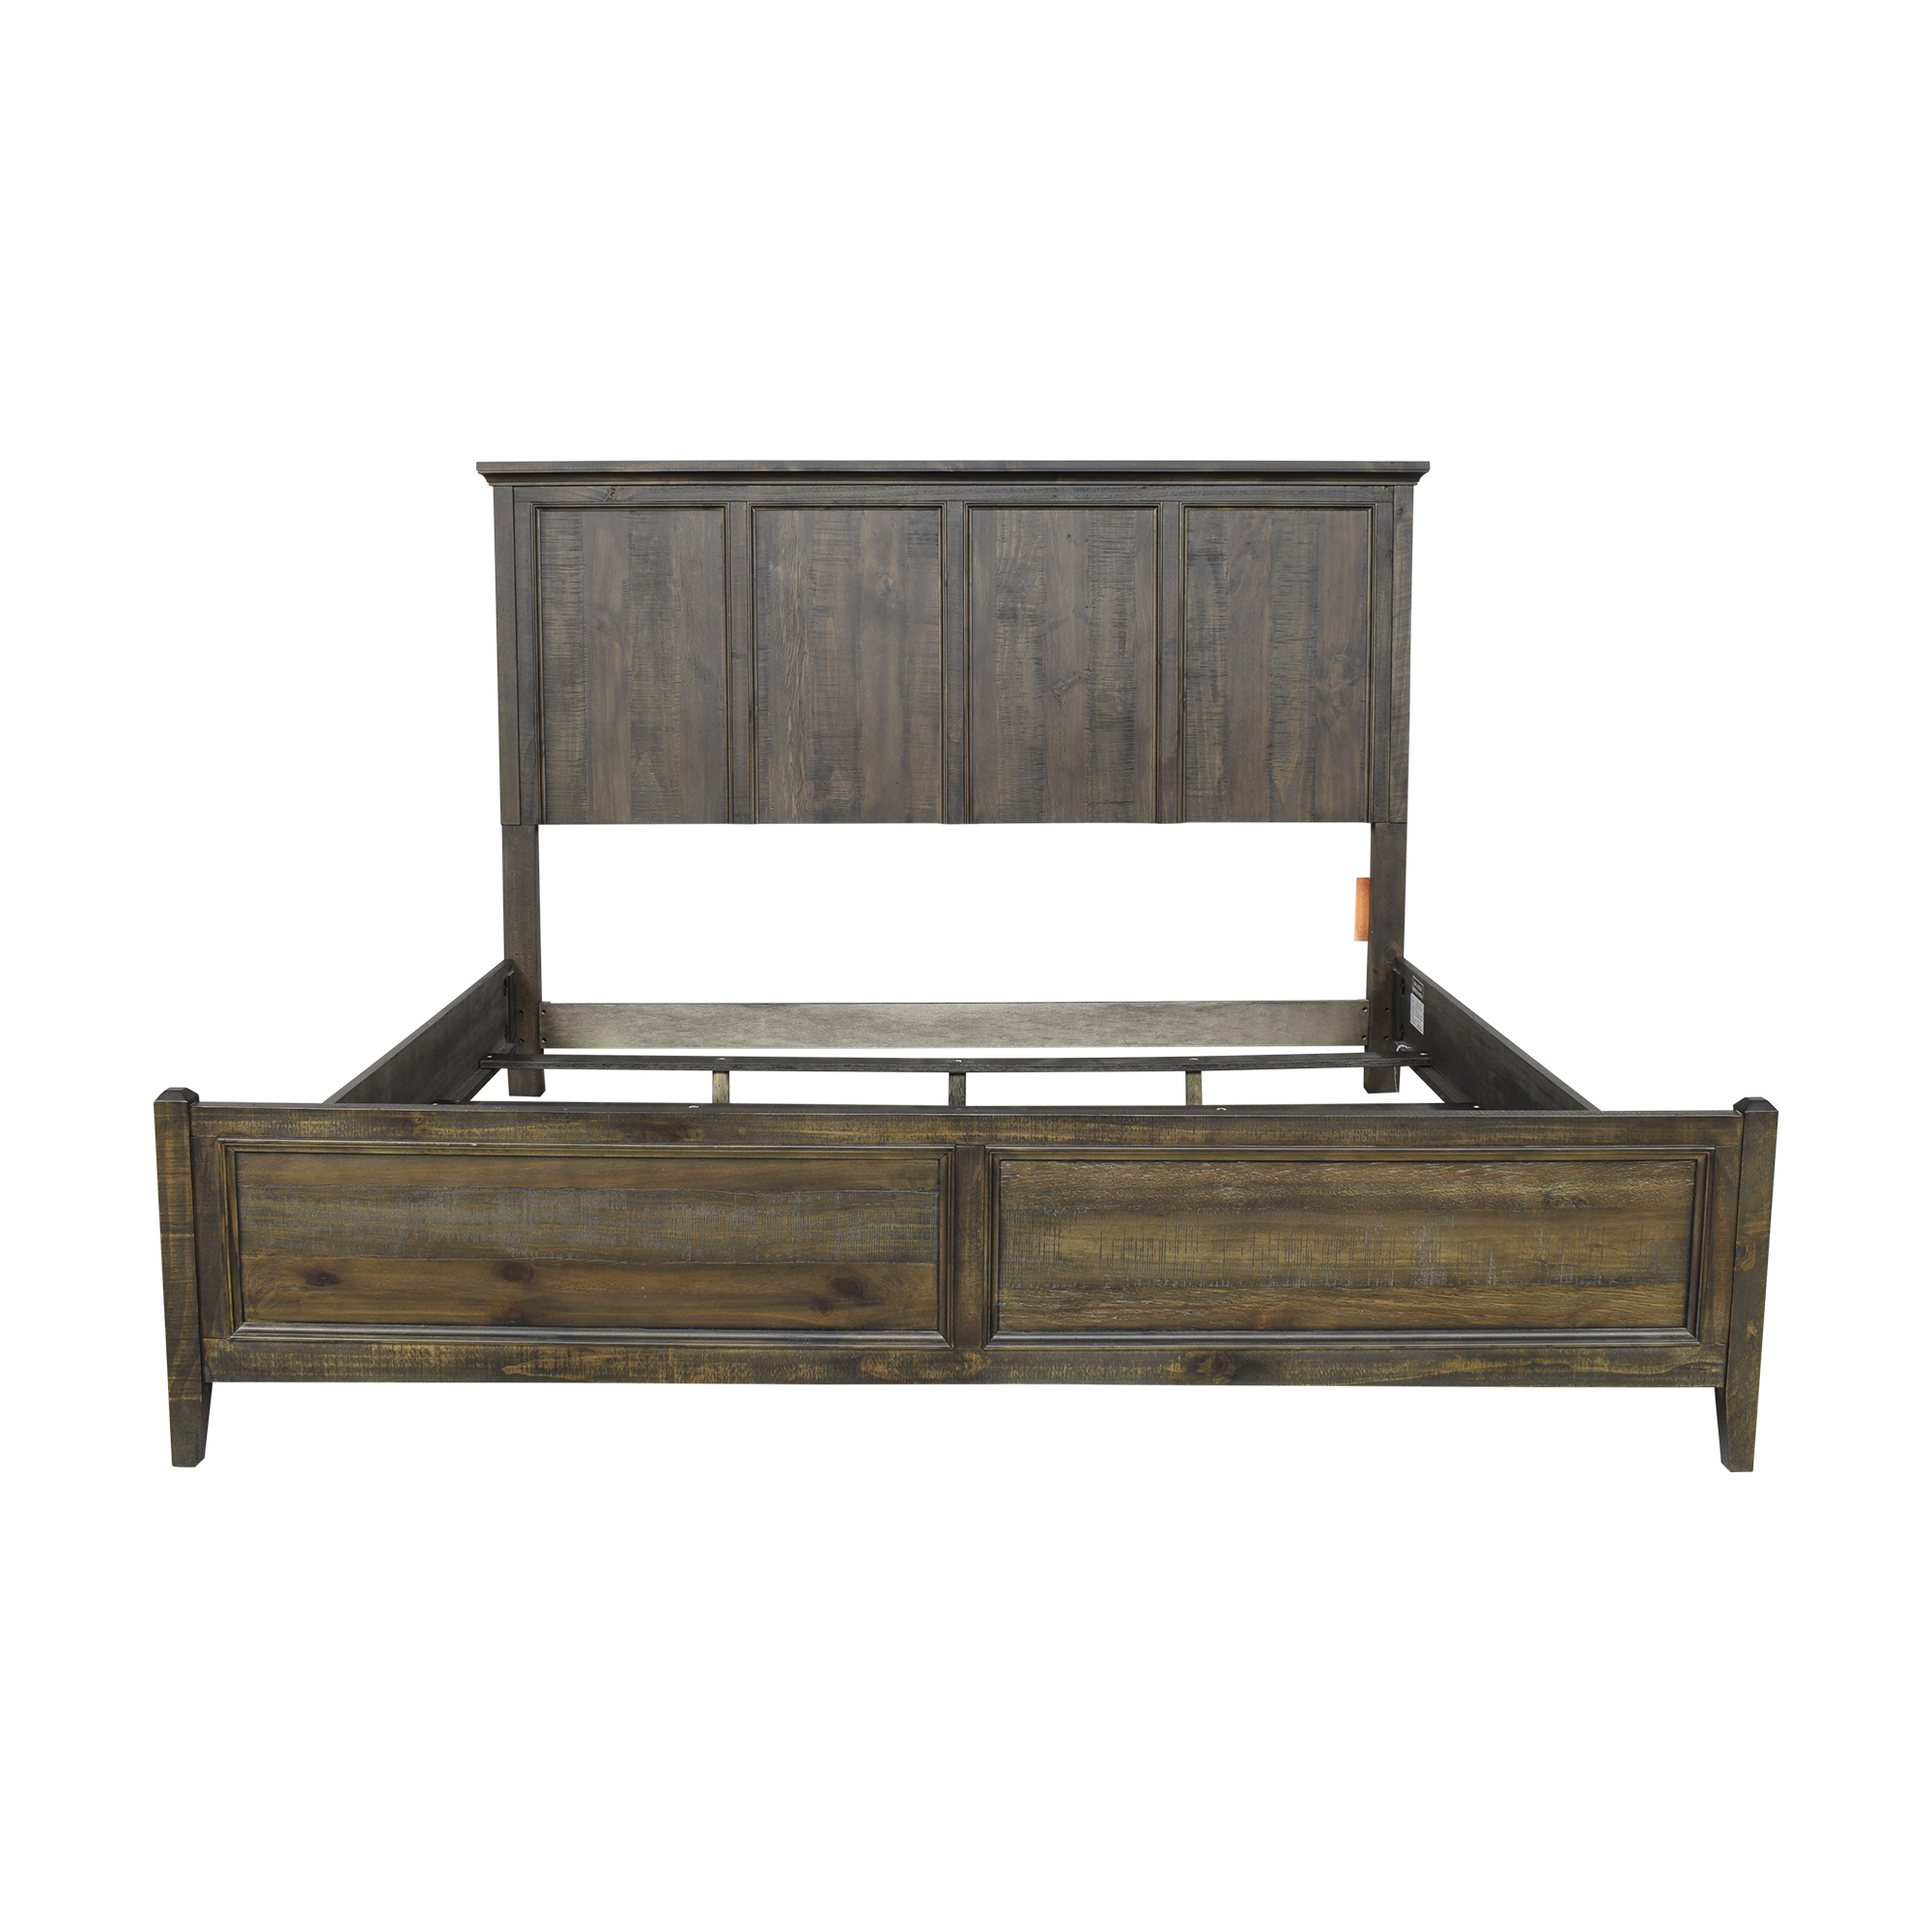 Raymour & Flanigan Raymour & Flanigan King Panel Bed for sale